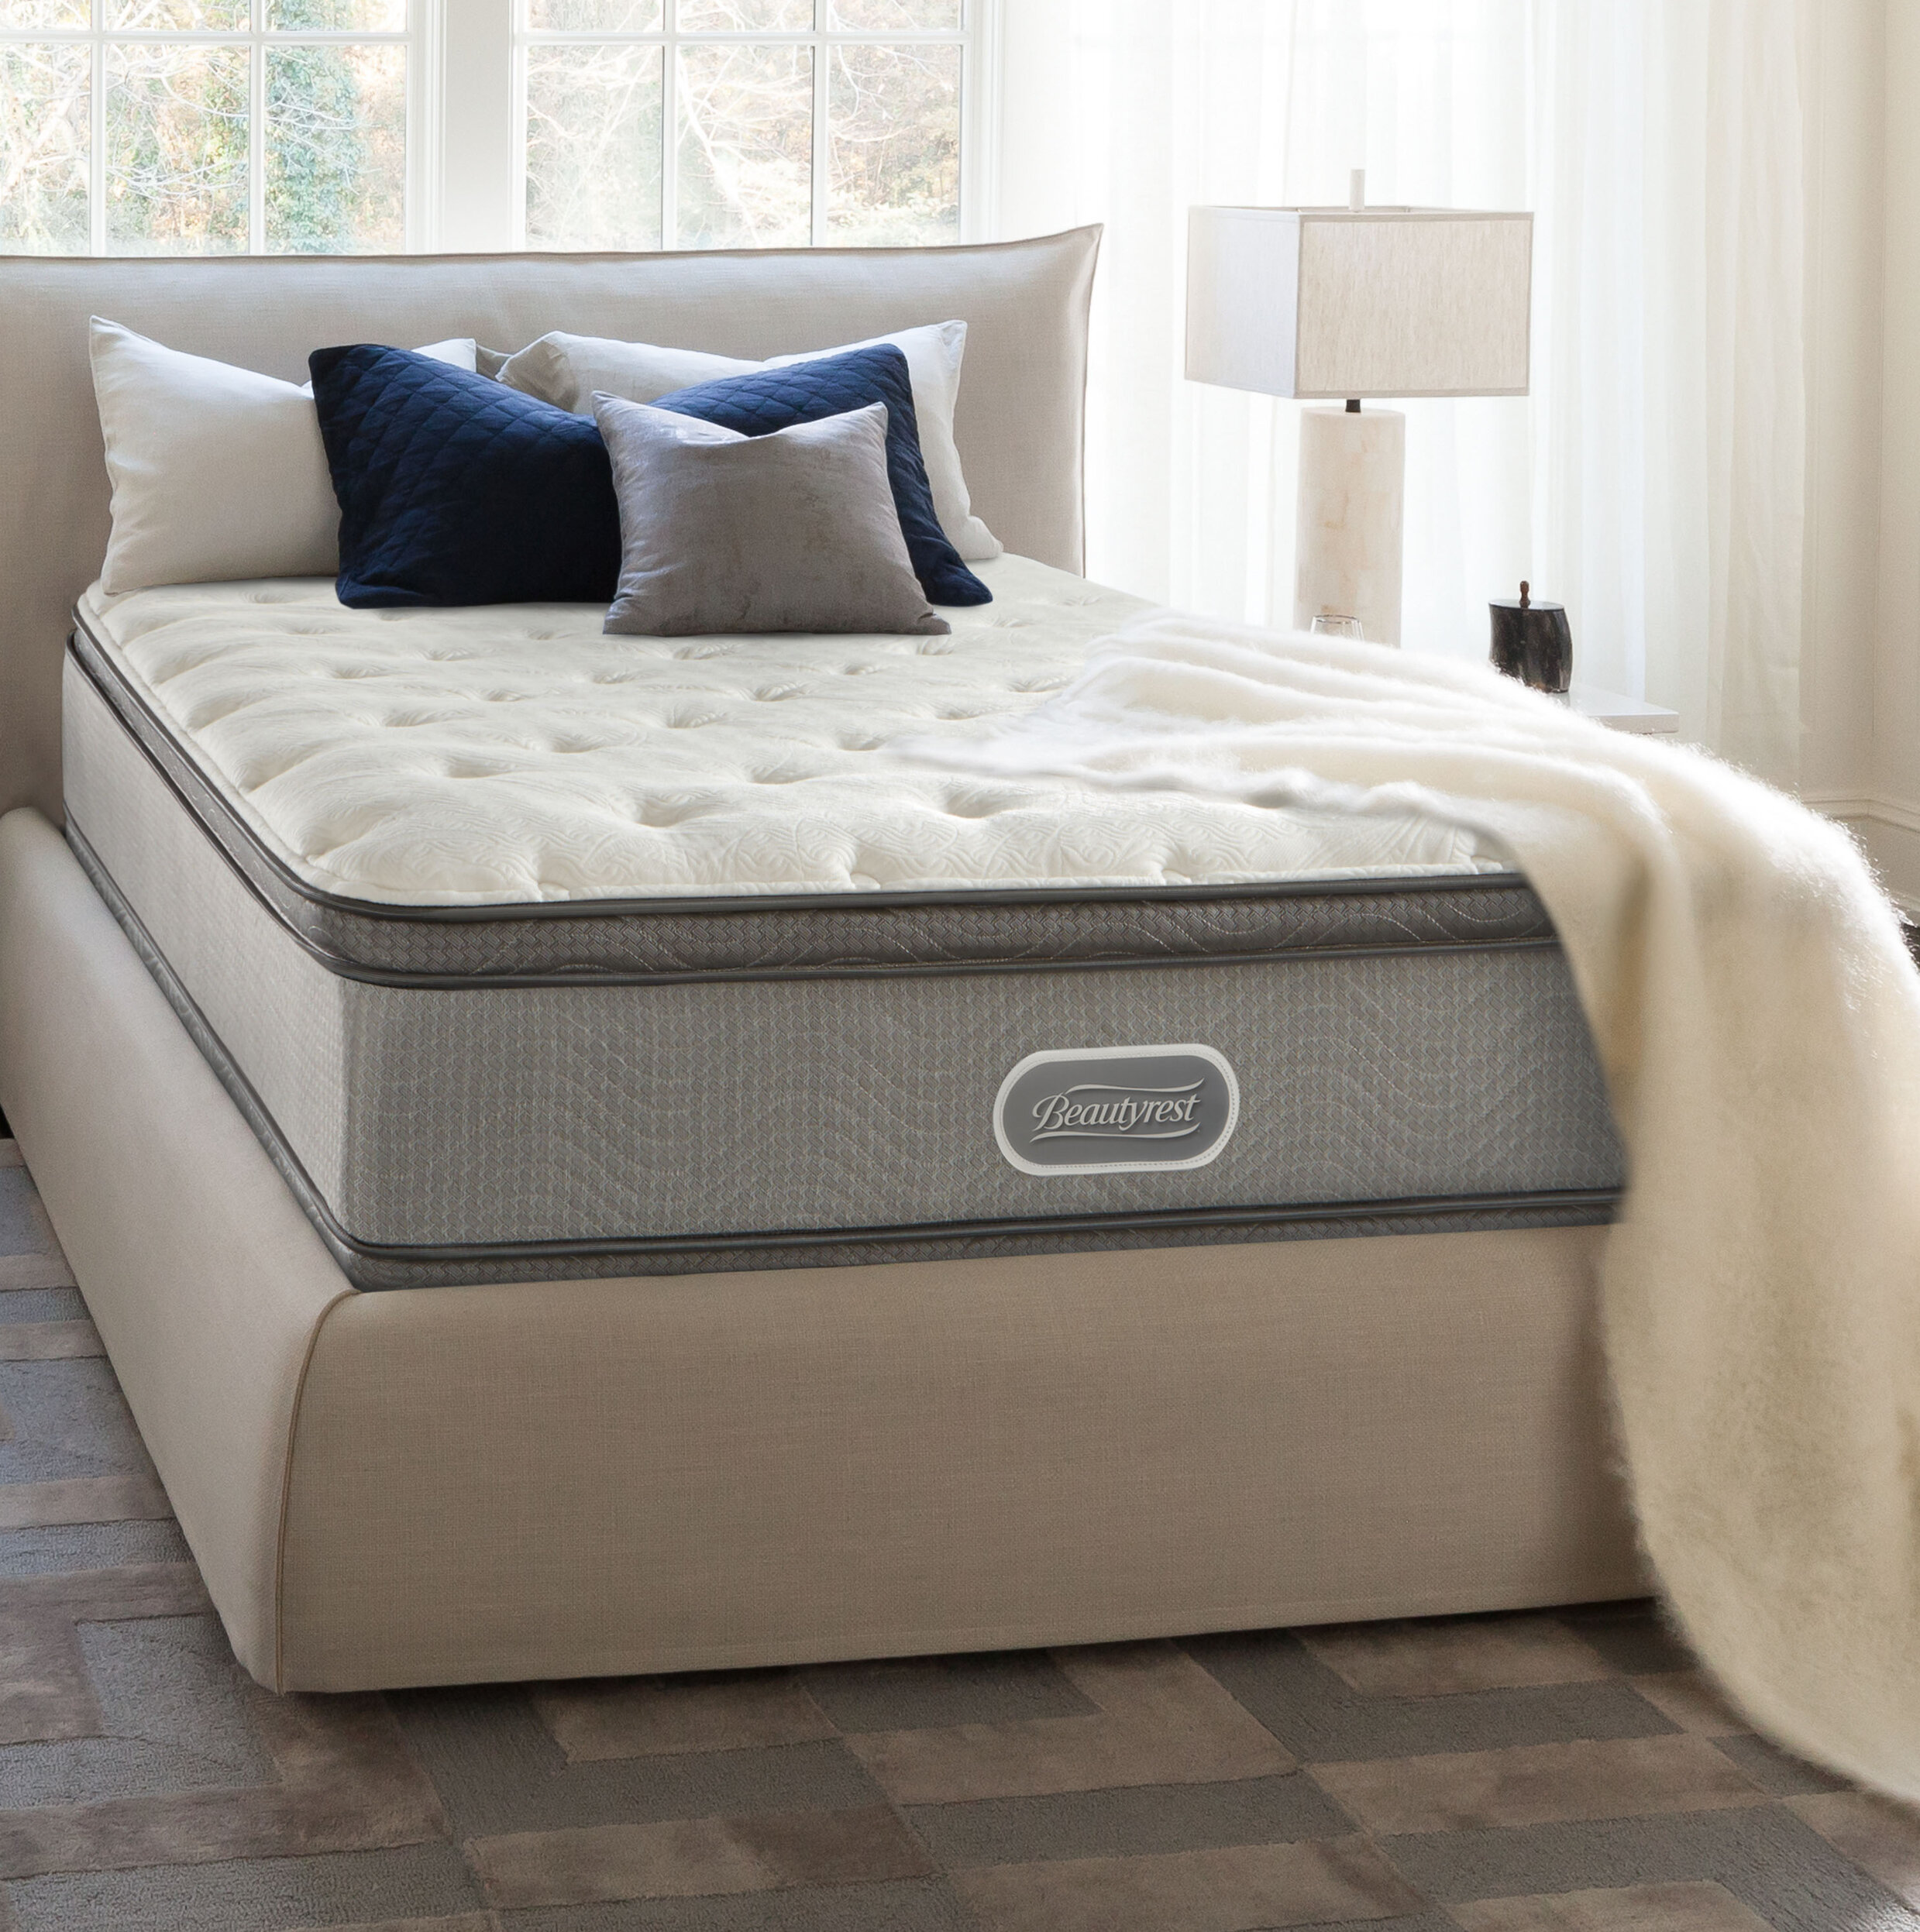 top product your outlet pillow mattress furniture pacifica bedroom store majestic topper